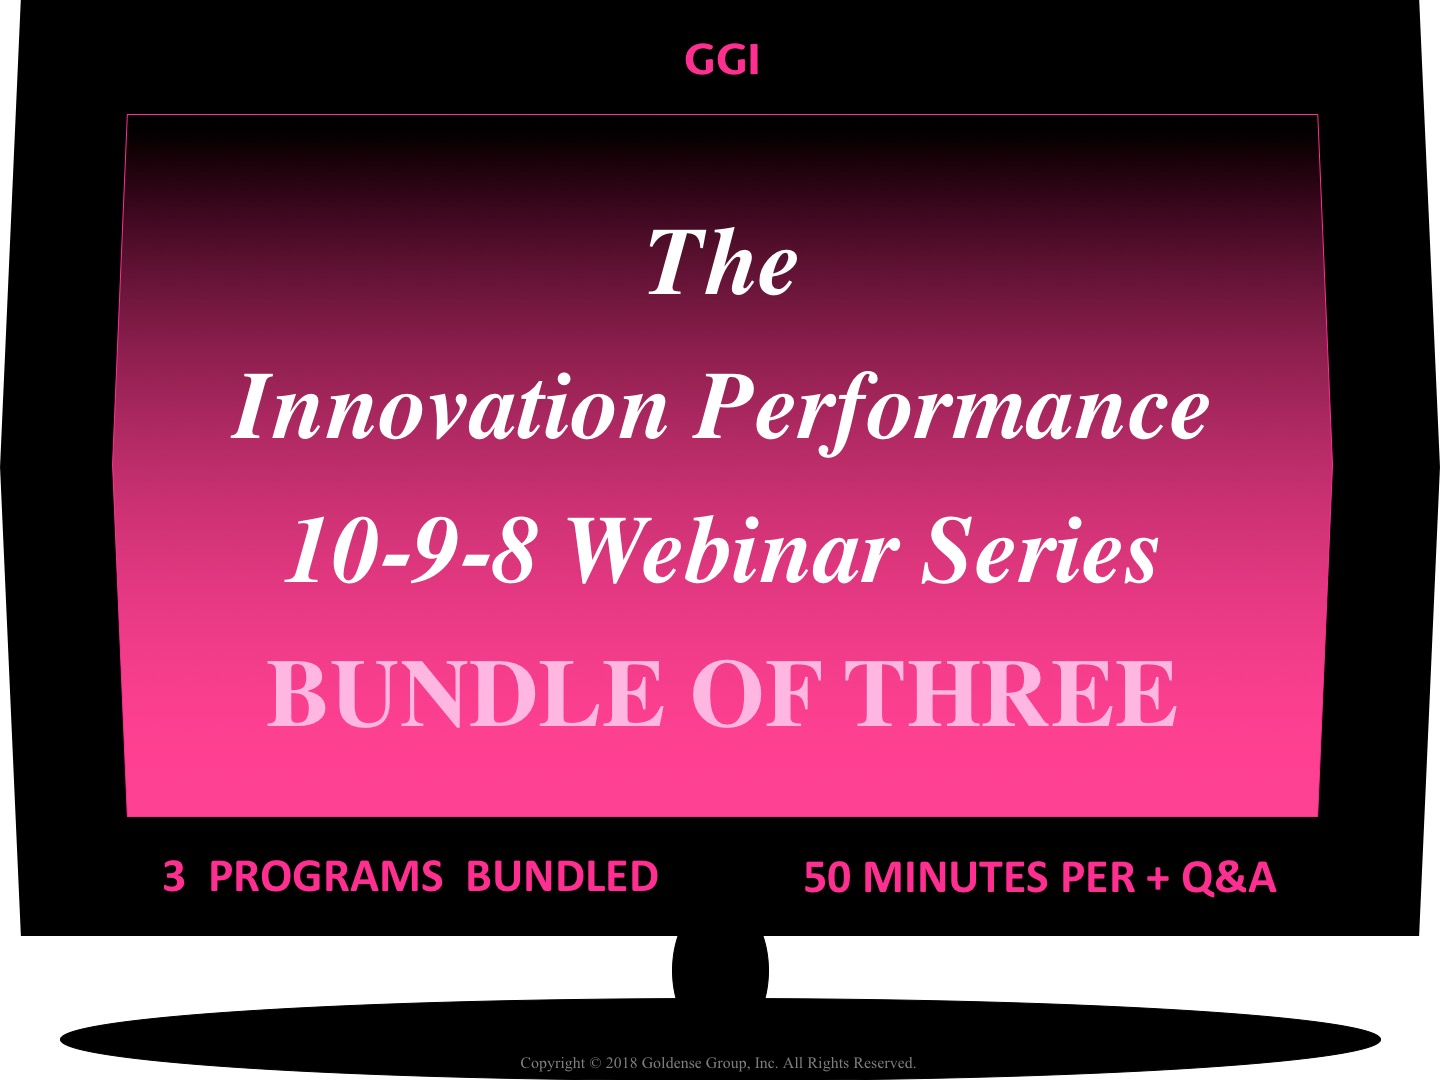 Innovation Performance 10-9-8 Webinar Series